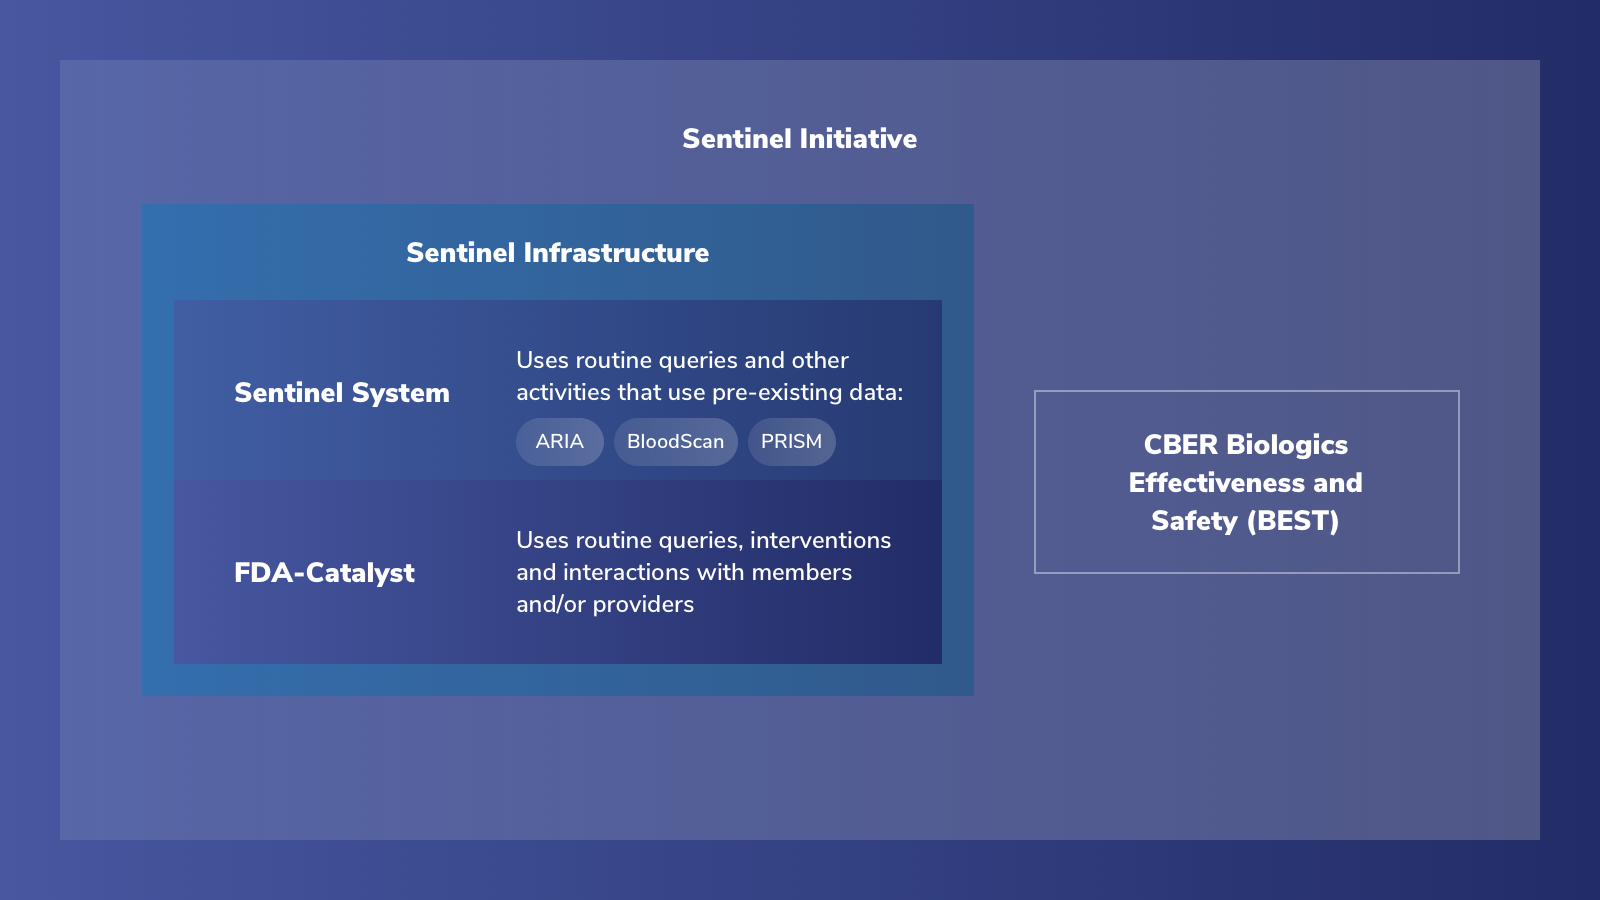 Sentinel Initiative is made of Sentinel System, FDA-Catalyst, and CBER Biologics Effectiveness and Safety (BEST)